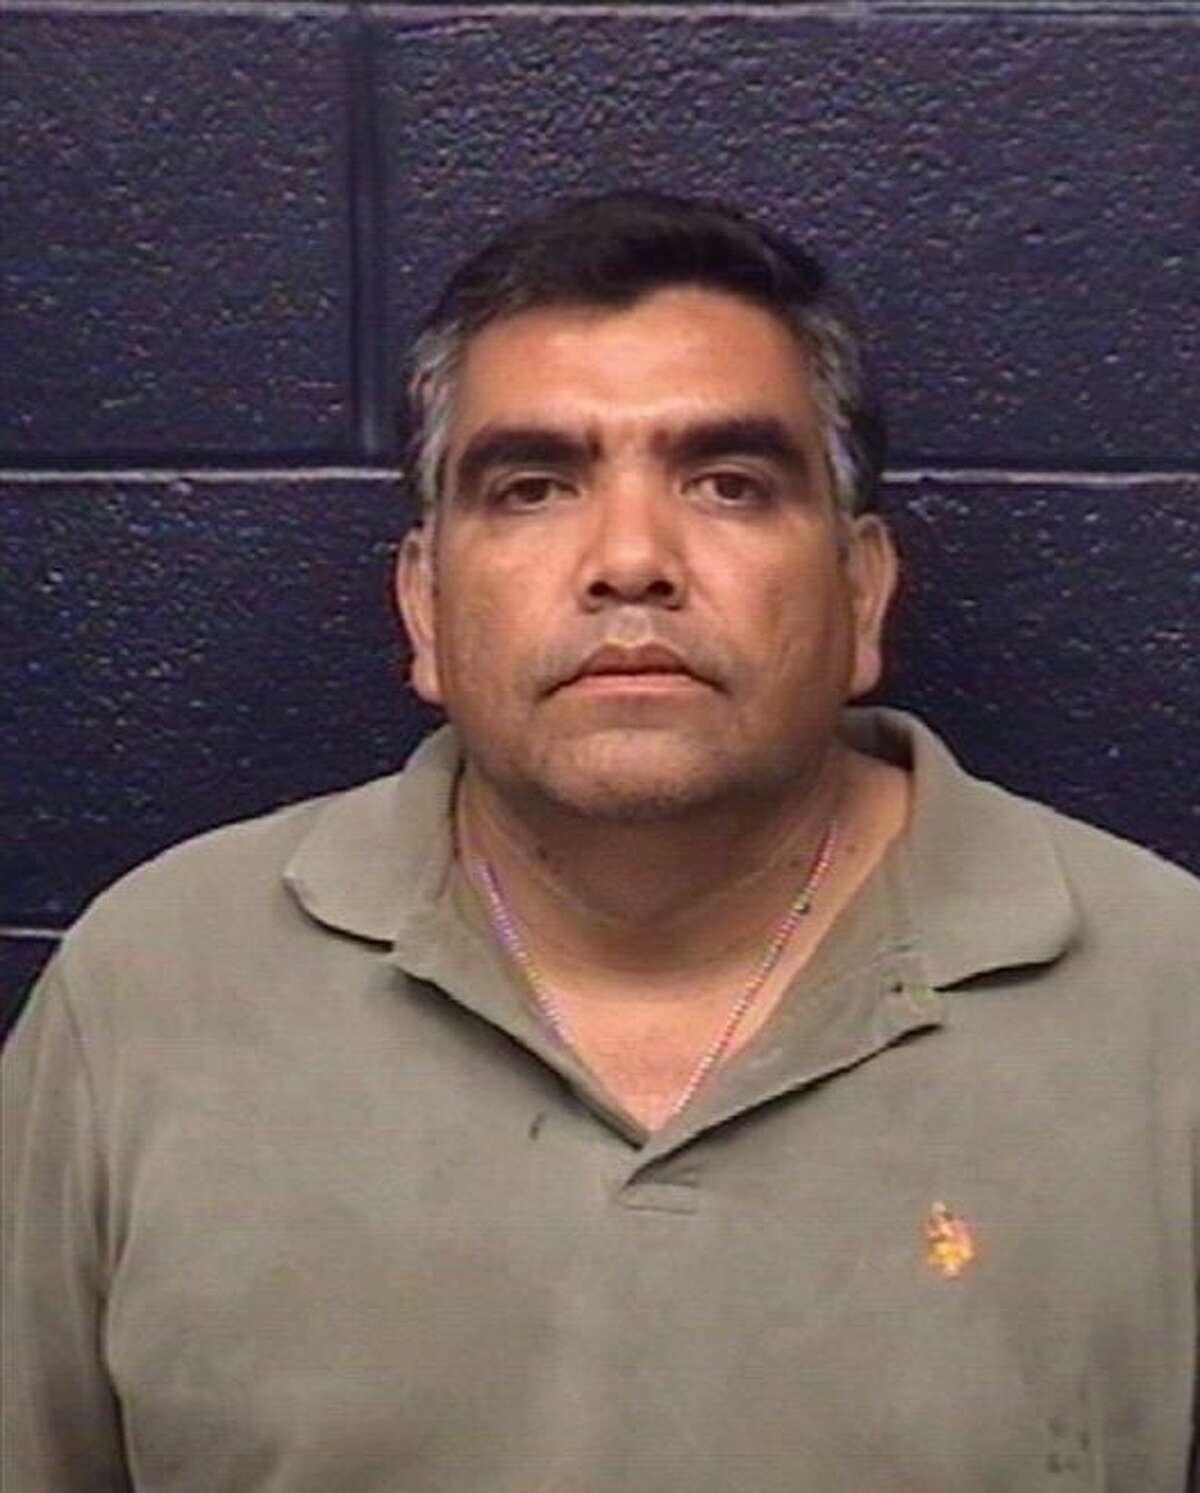 Gilberto Tello is accused of killing Marisol Flores on Oct. 23, 2011. He was indicted on Jan. 18, 2012.